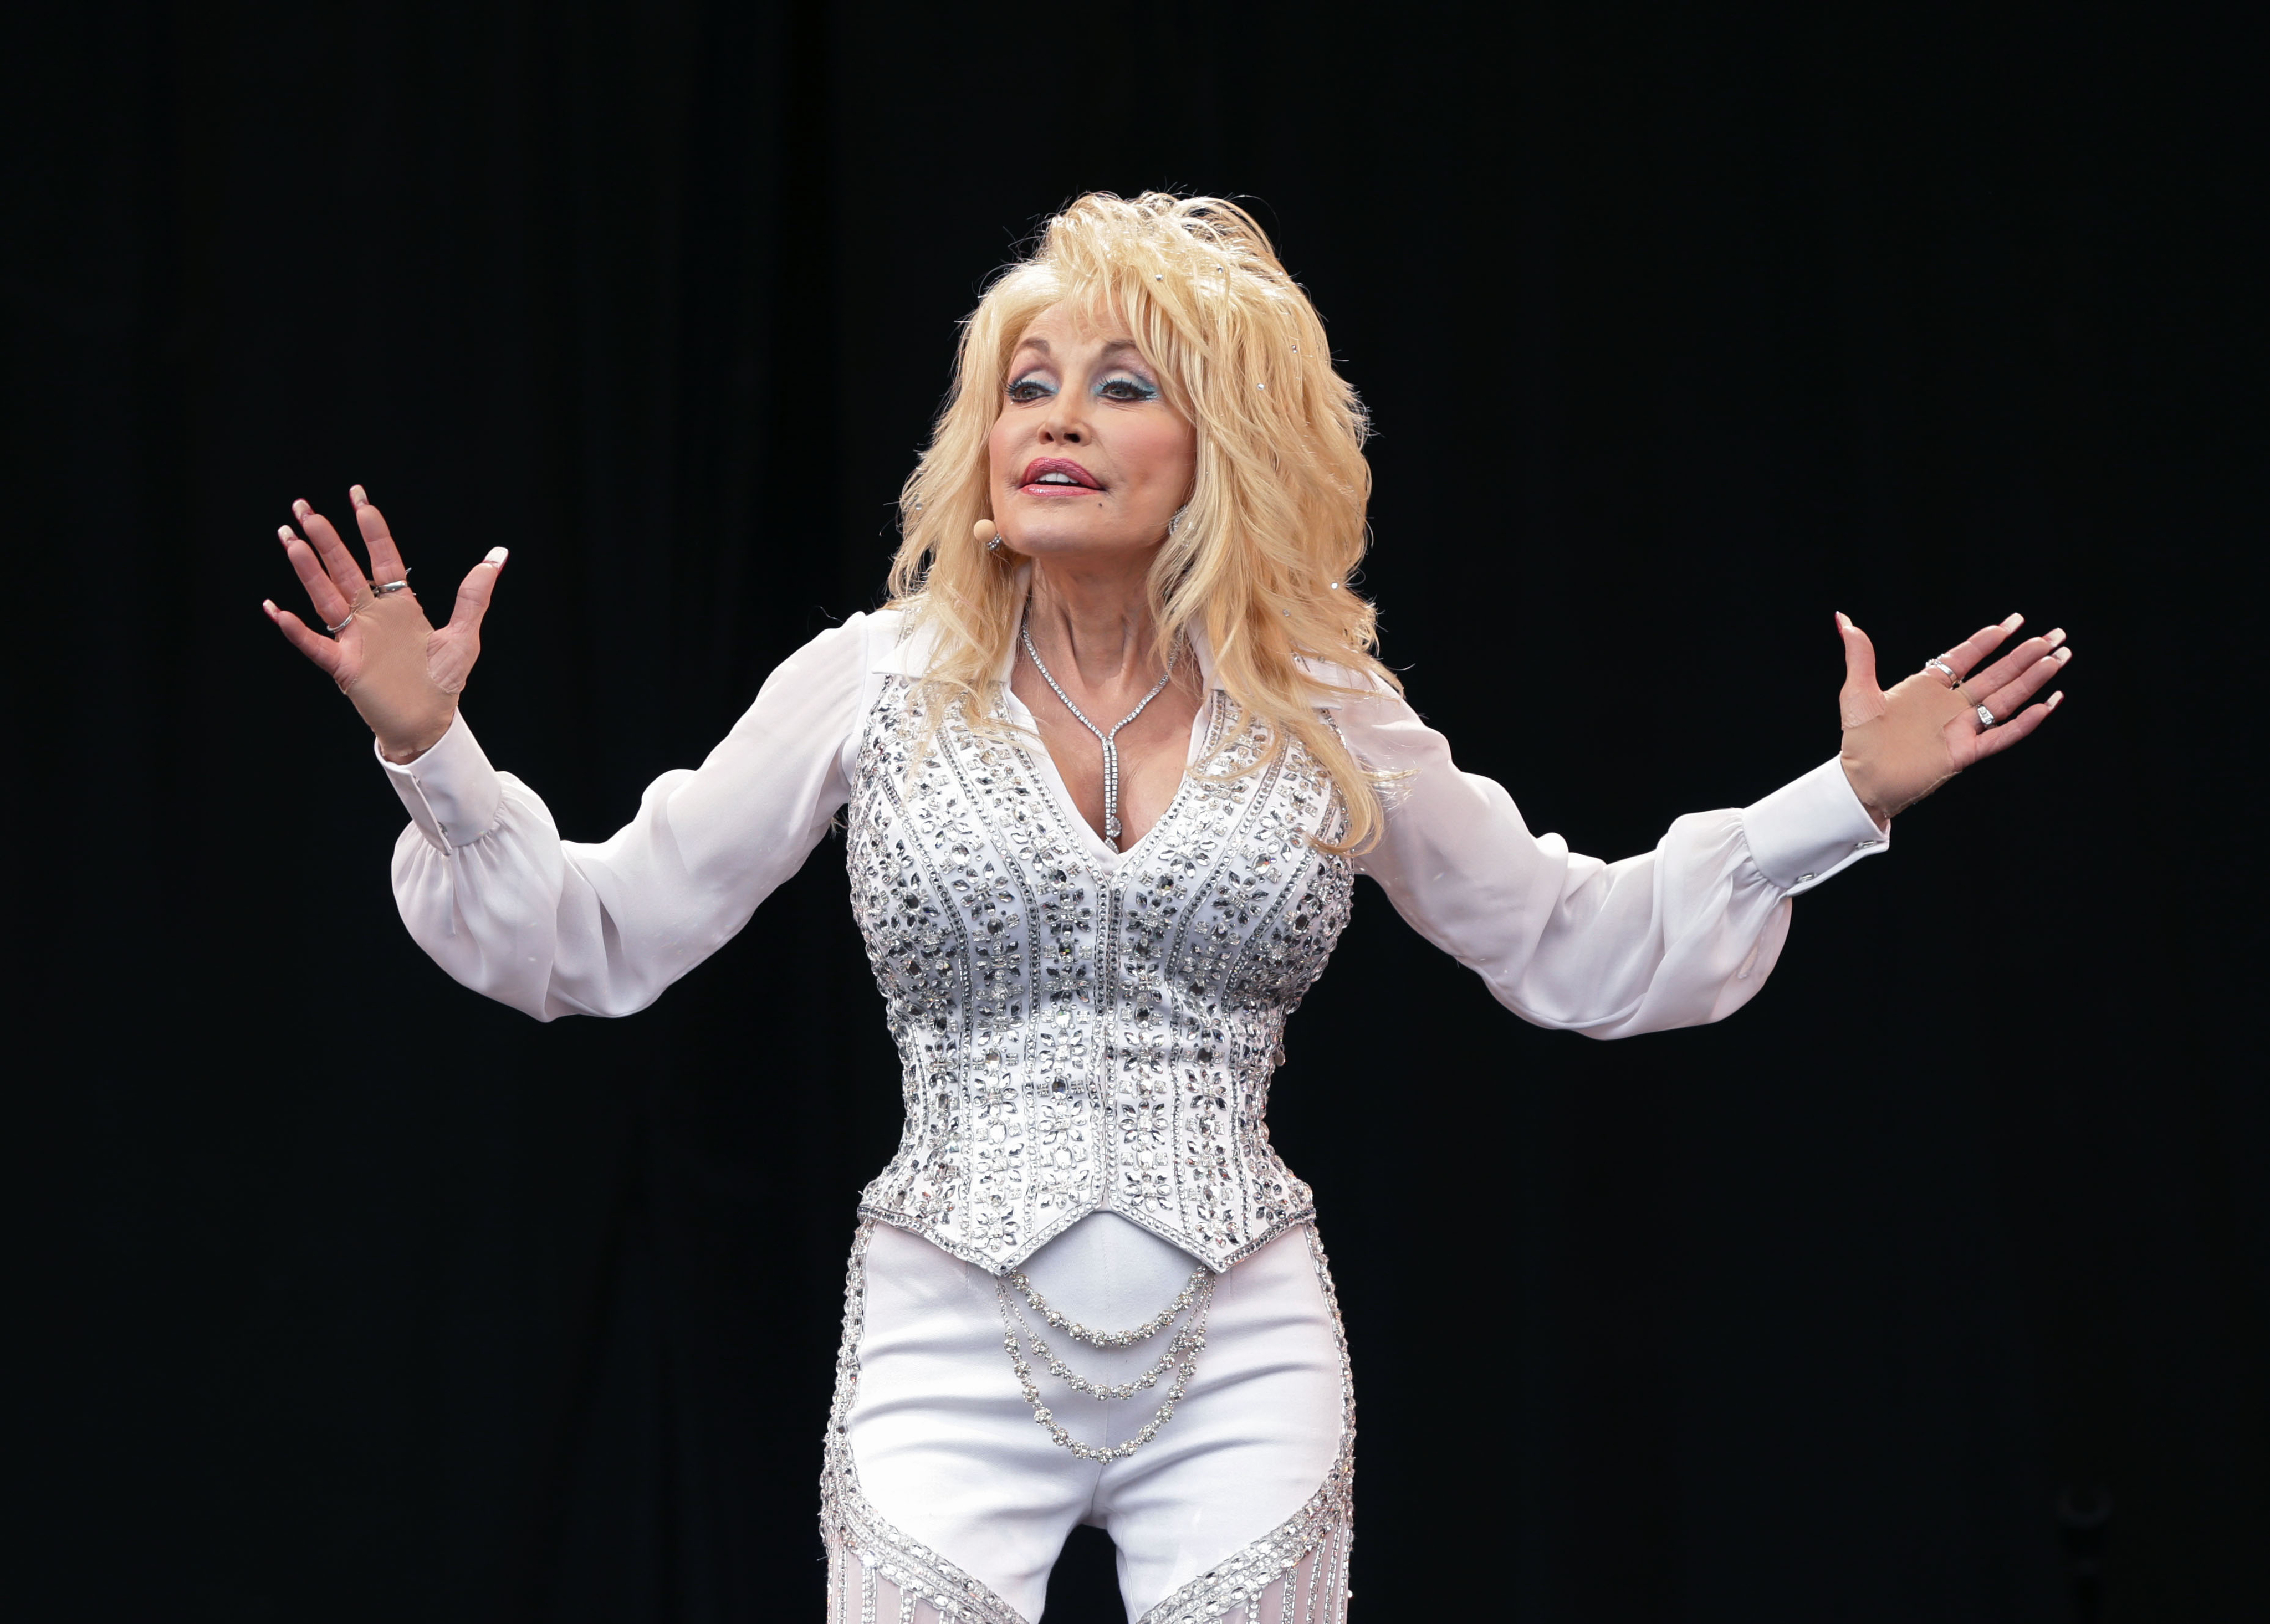 """WATCH: Dolly Parton Used Royalties from Whitney Houston's Rendition of """"I Will Always Love You"""" to Invest in Nashville's Black Community"""